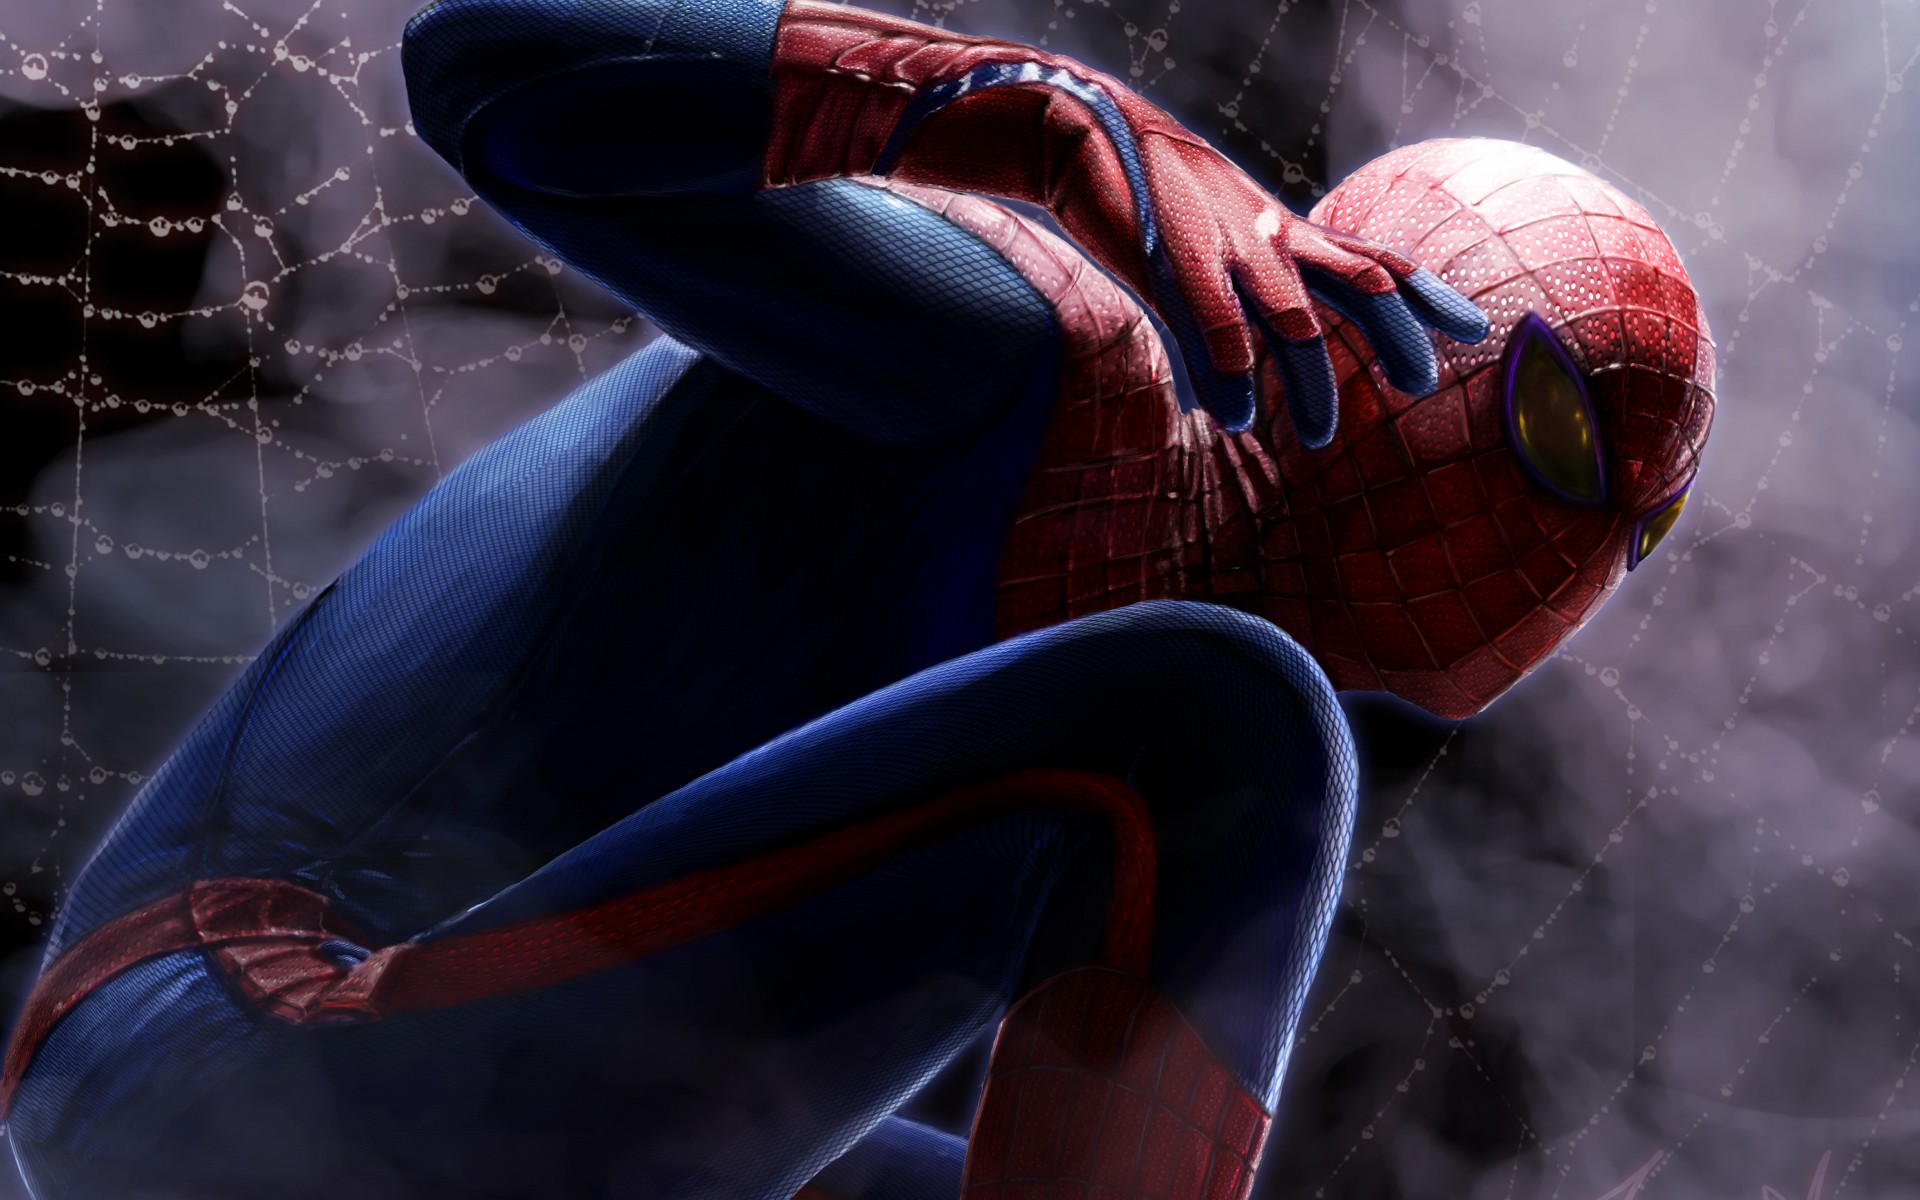 spider man wallpapers hd wallpapers Car Tuning 1920x1200